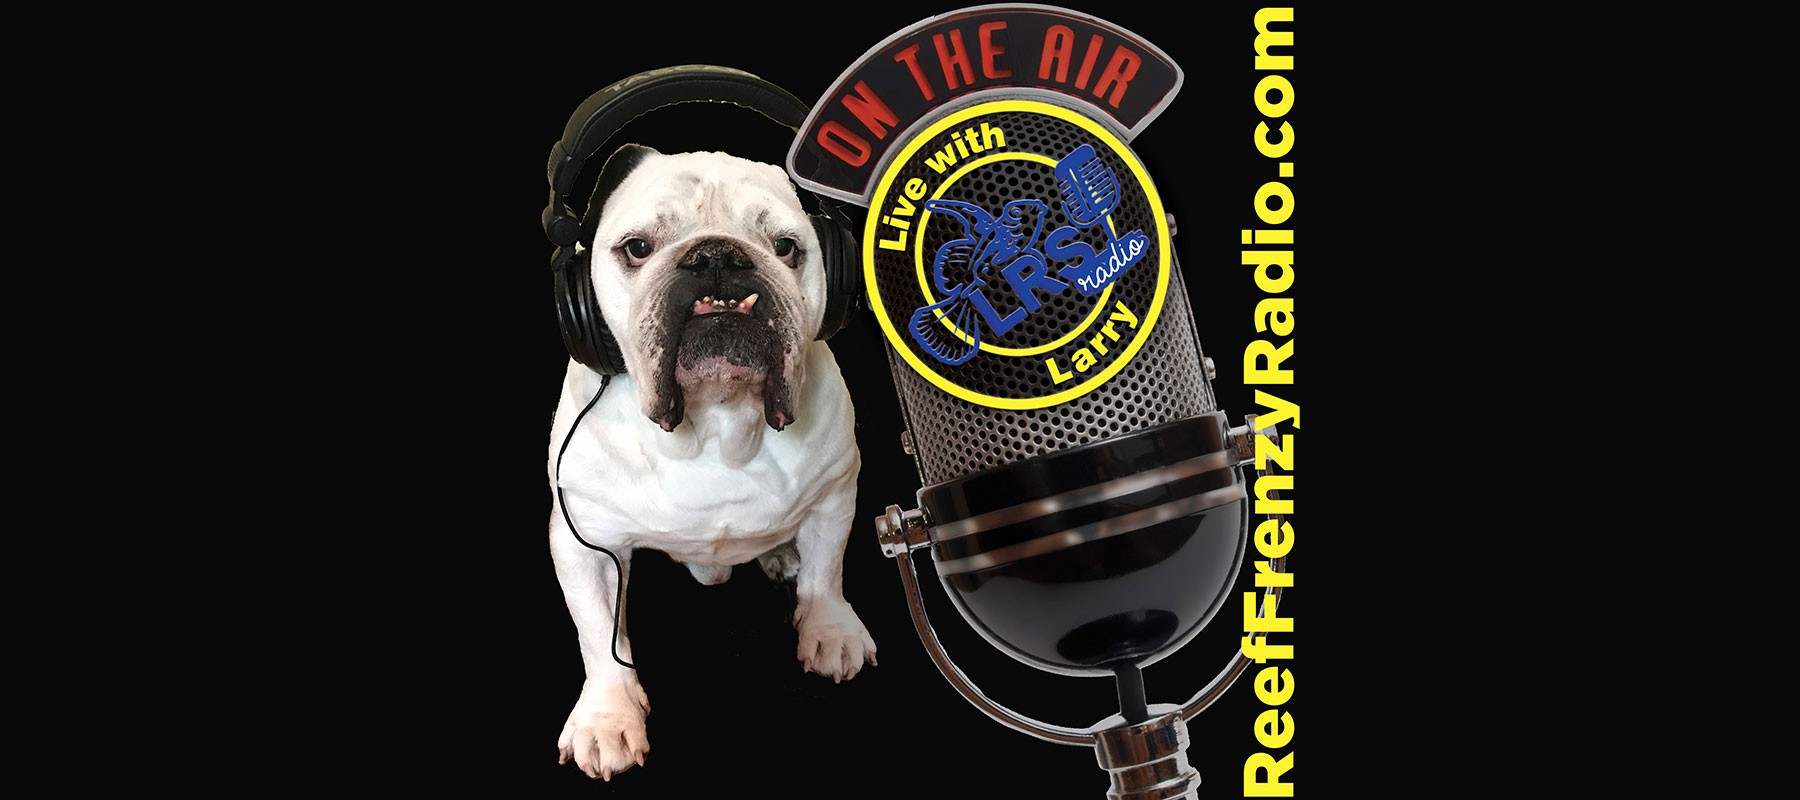 reeffrenzyradio.com podcast website